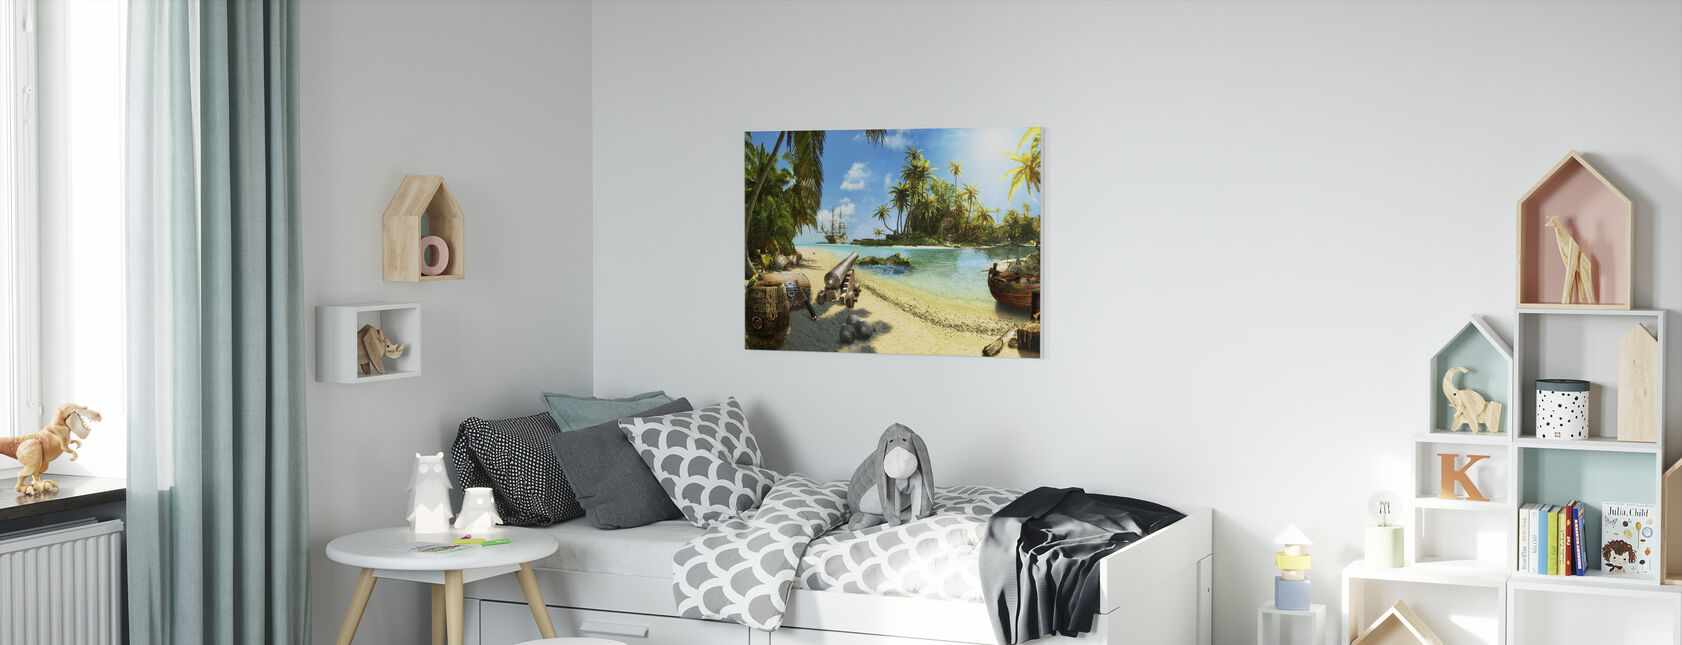 Pirate Island - Canvas print - Kids Room